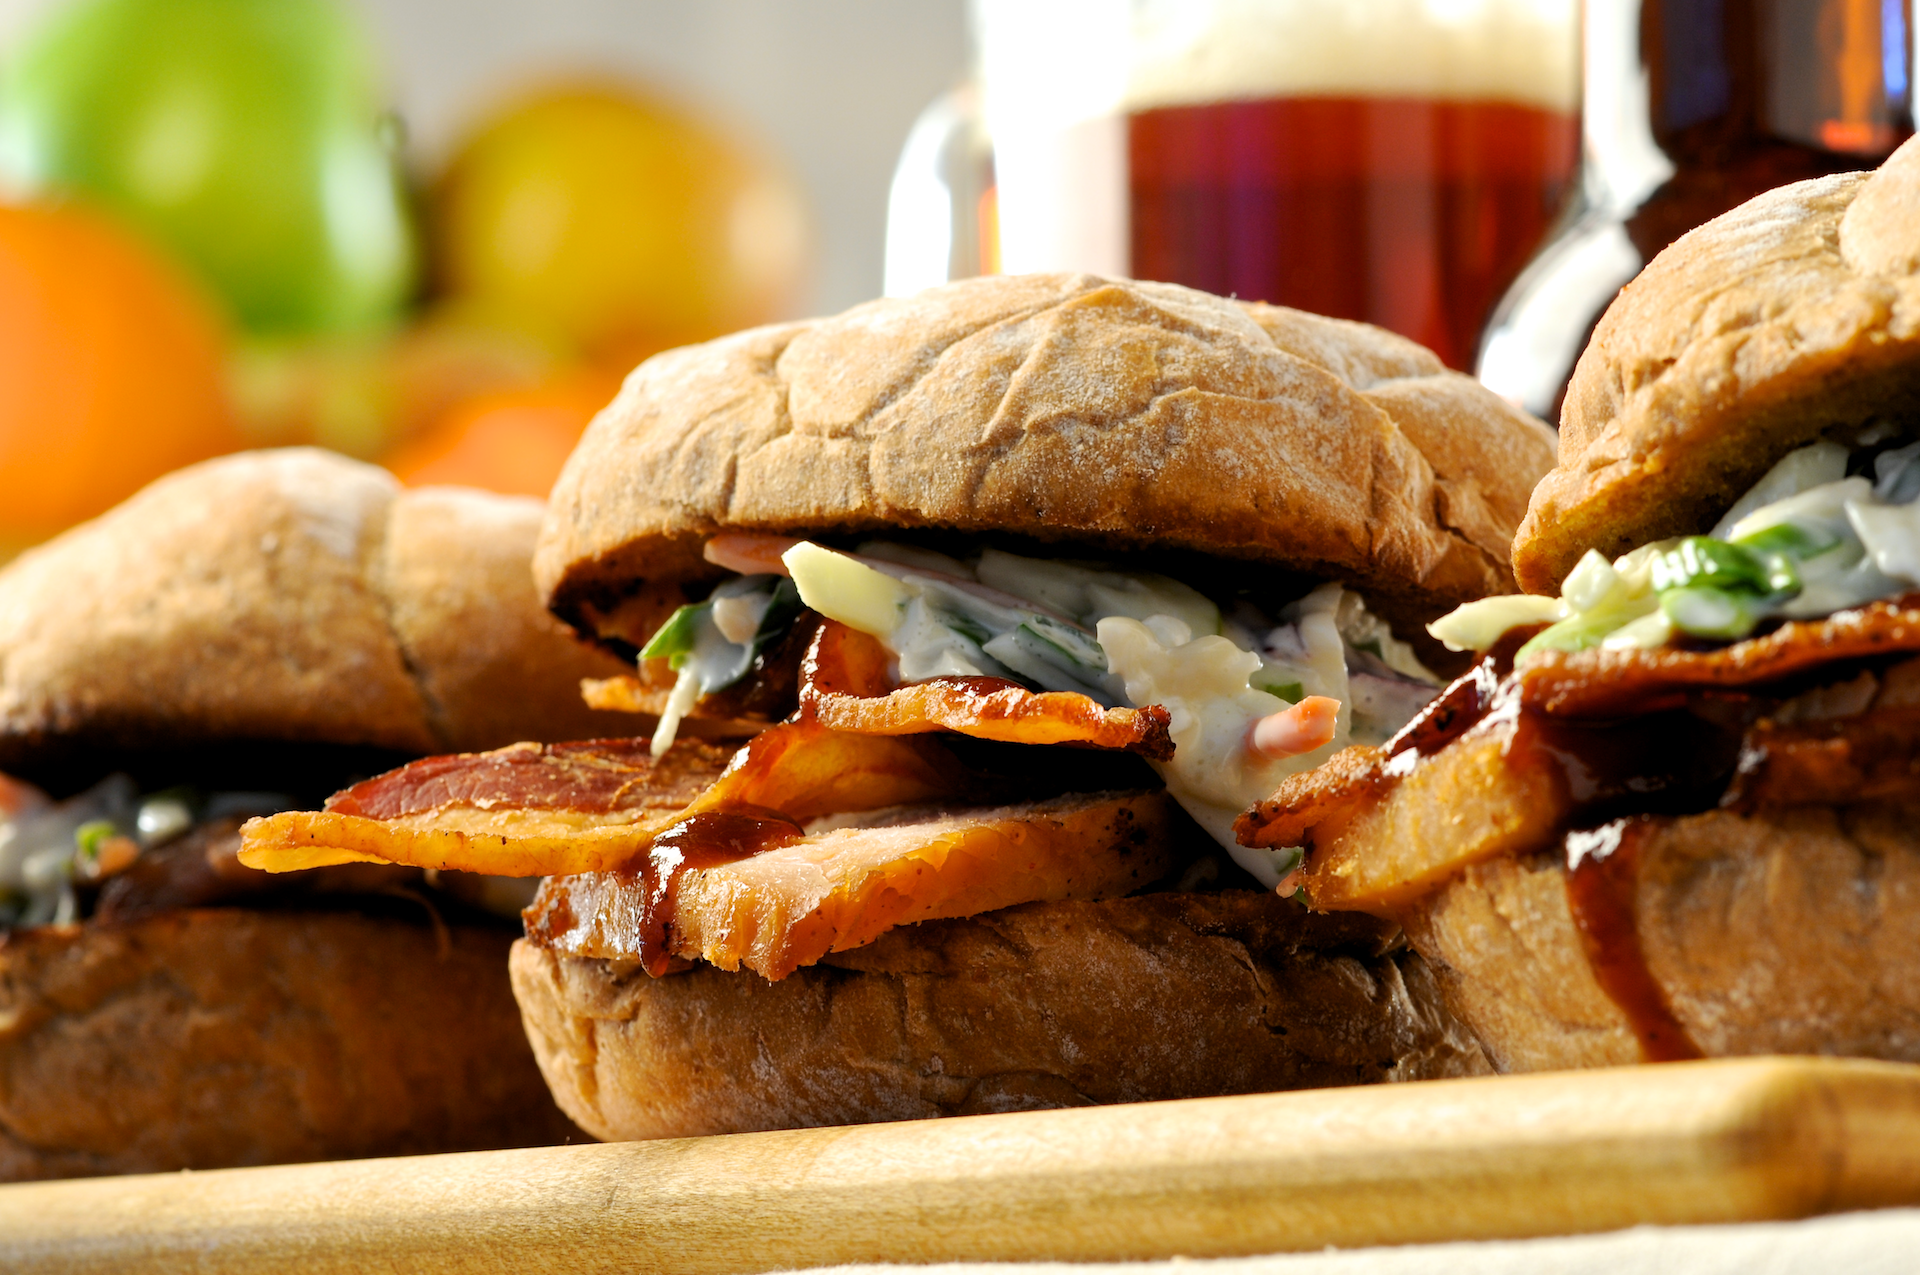 Hearty BBQ smoked chicken or pulled pork sandwiches layered on toasted Kaiser rolls with crisp Applewood-Smoked bacon, smoky-sweet cider barbecue sauce and crunchy apple slaw. Tasty!